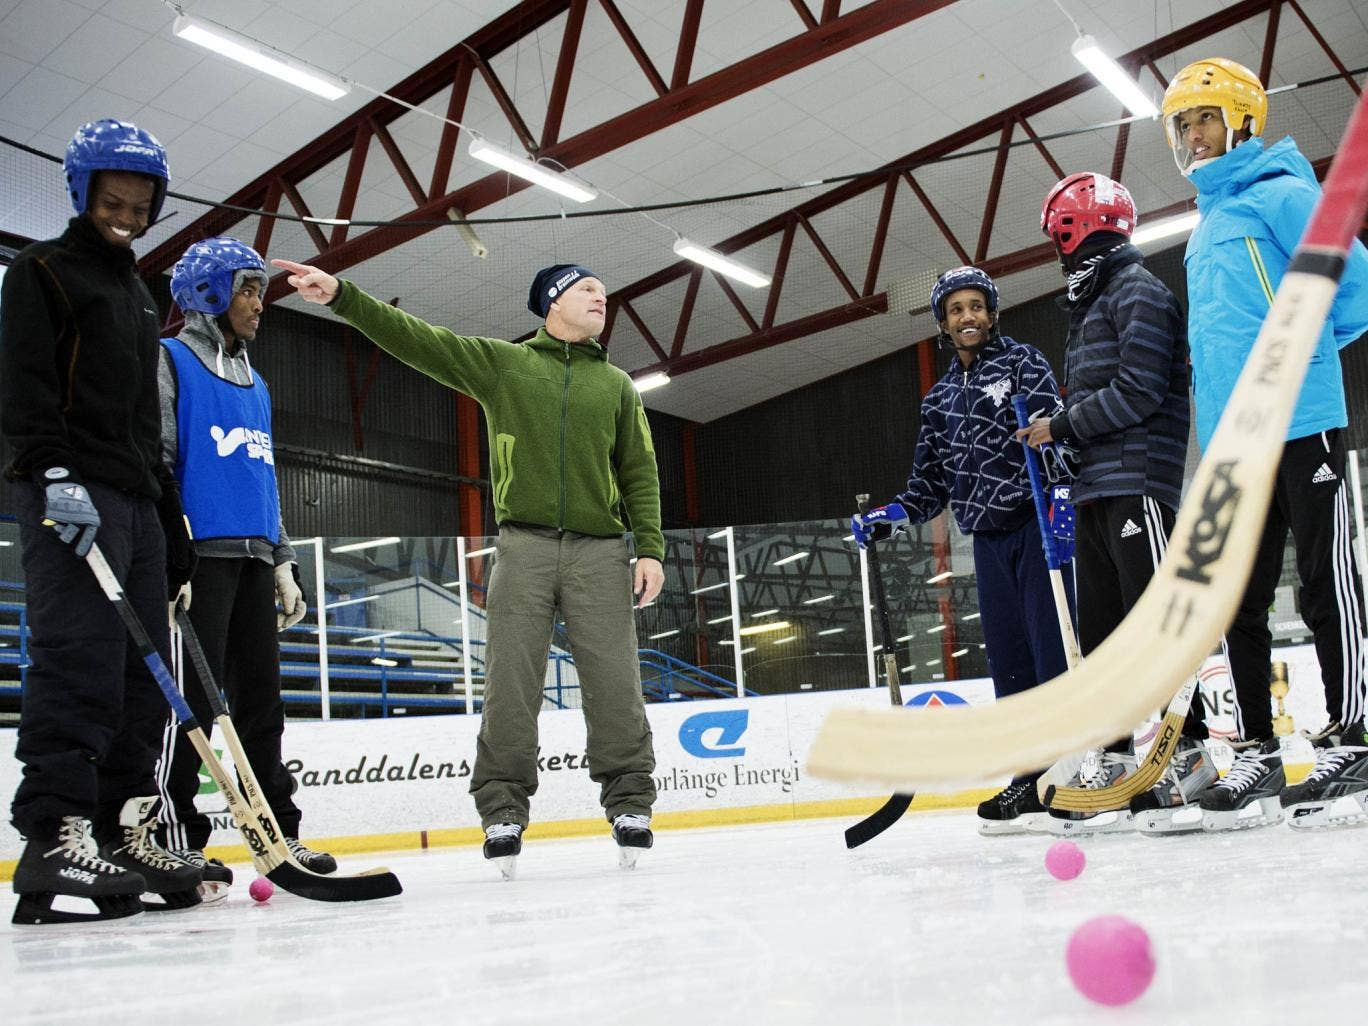 The Somali ice-bandy team practising with coach Per Fosshaug in Sweden